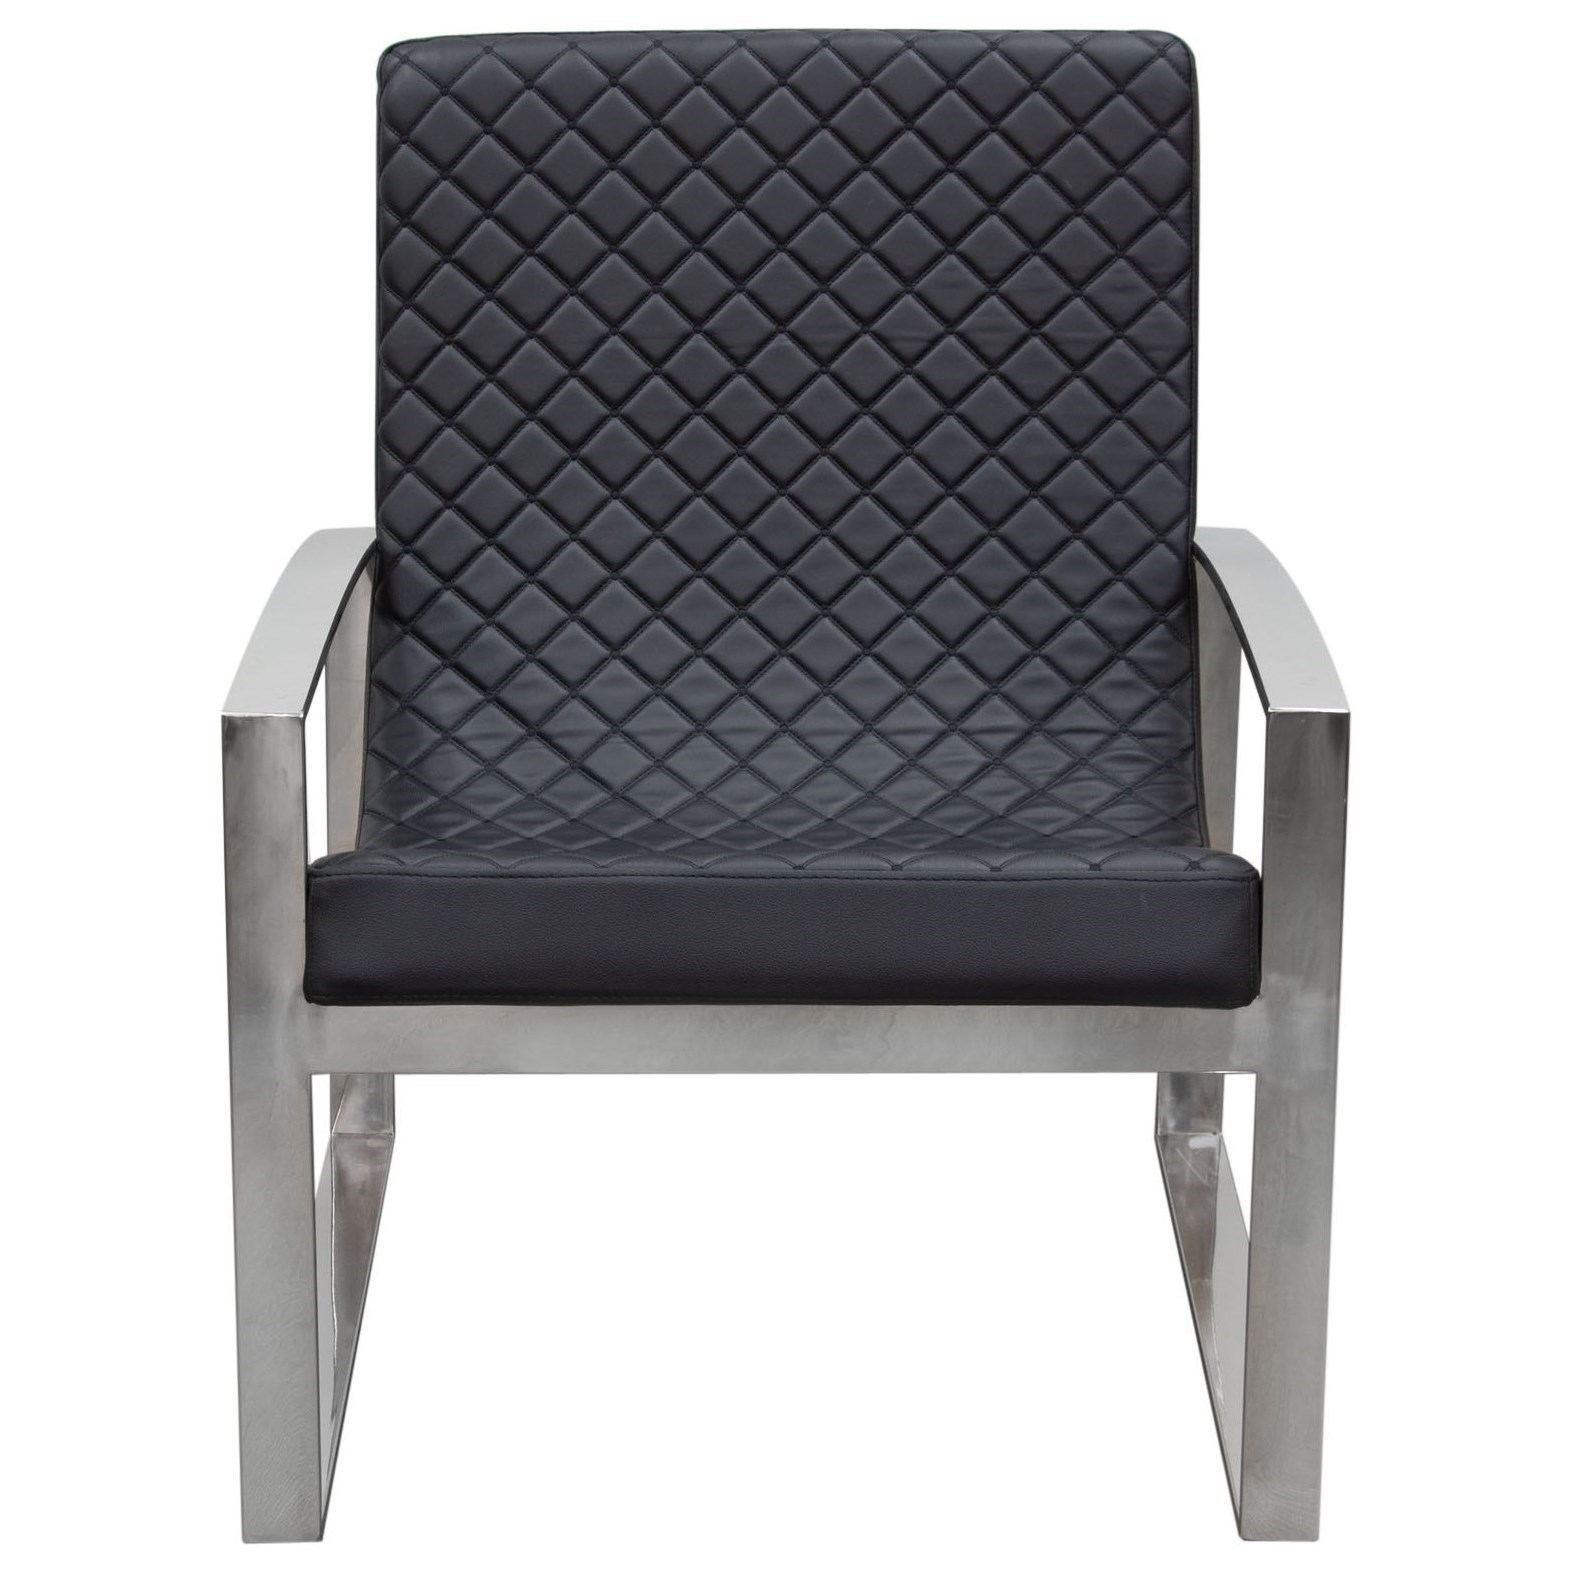 Diamond Sofa Accent Chairs Accent Chair with Diamond Tufted Quilt - Item Number: ARISTOCRAT